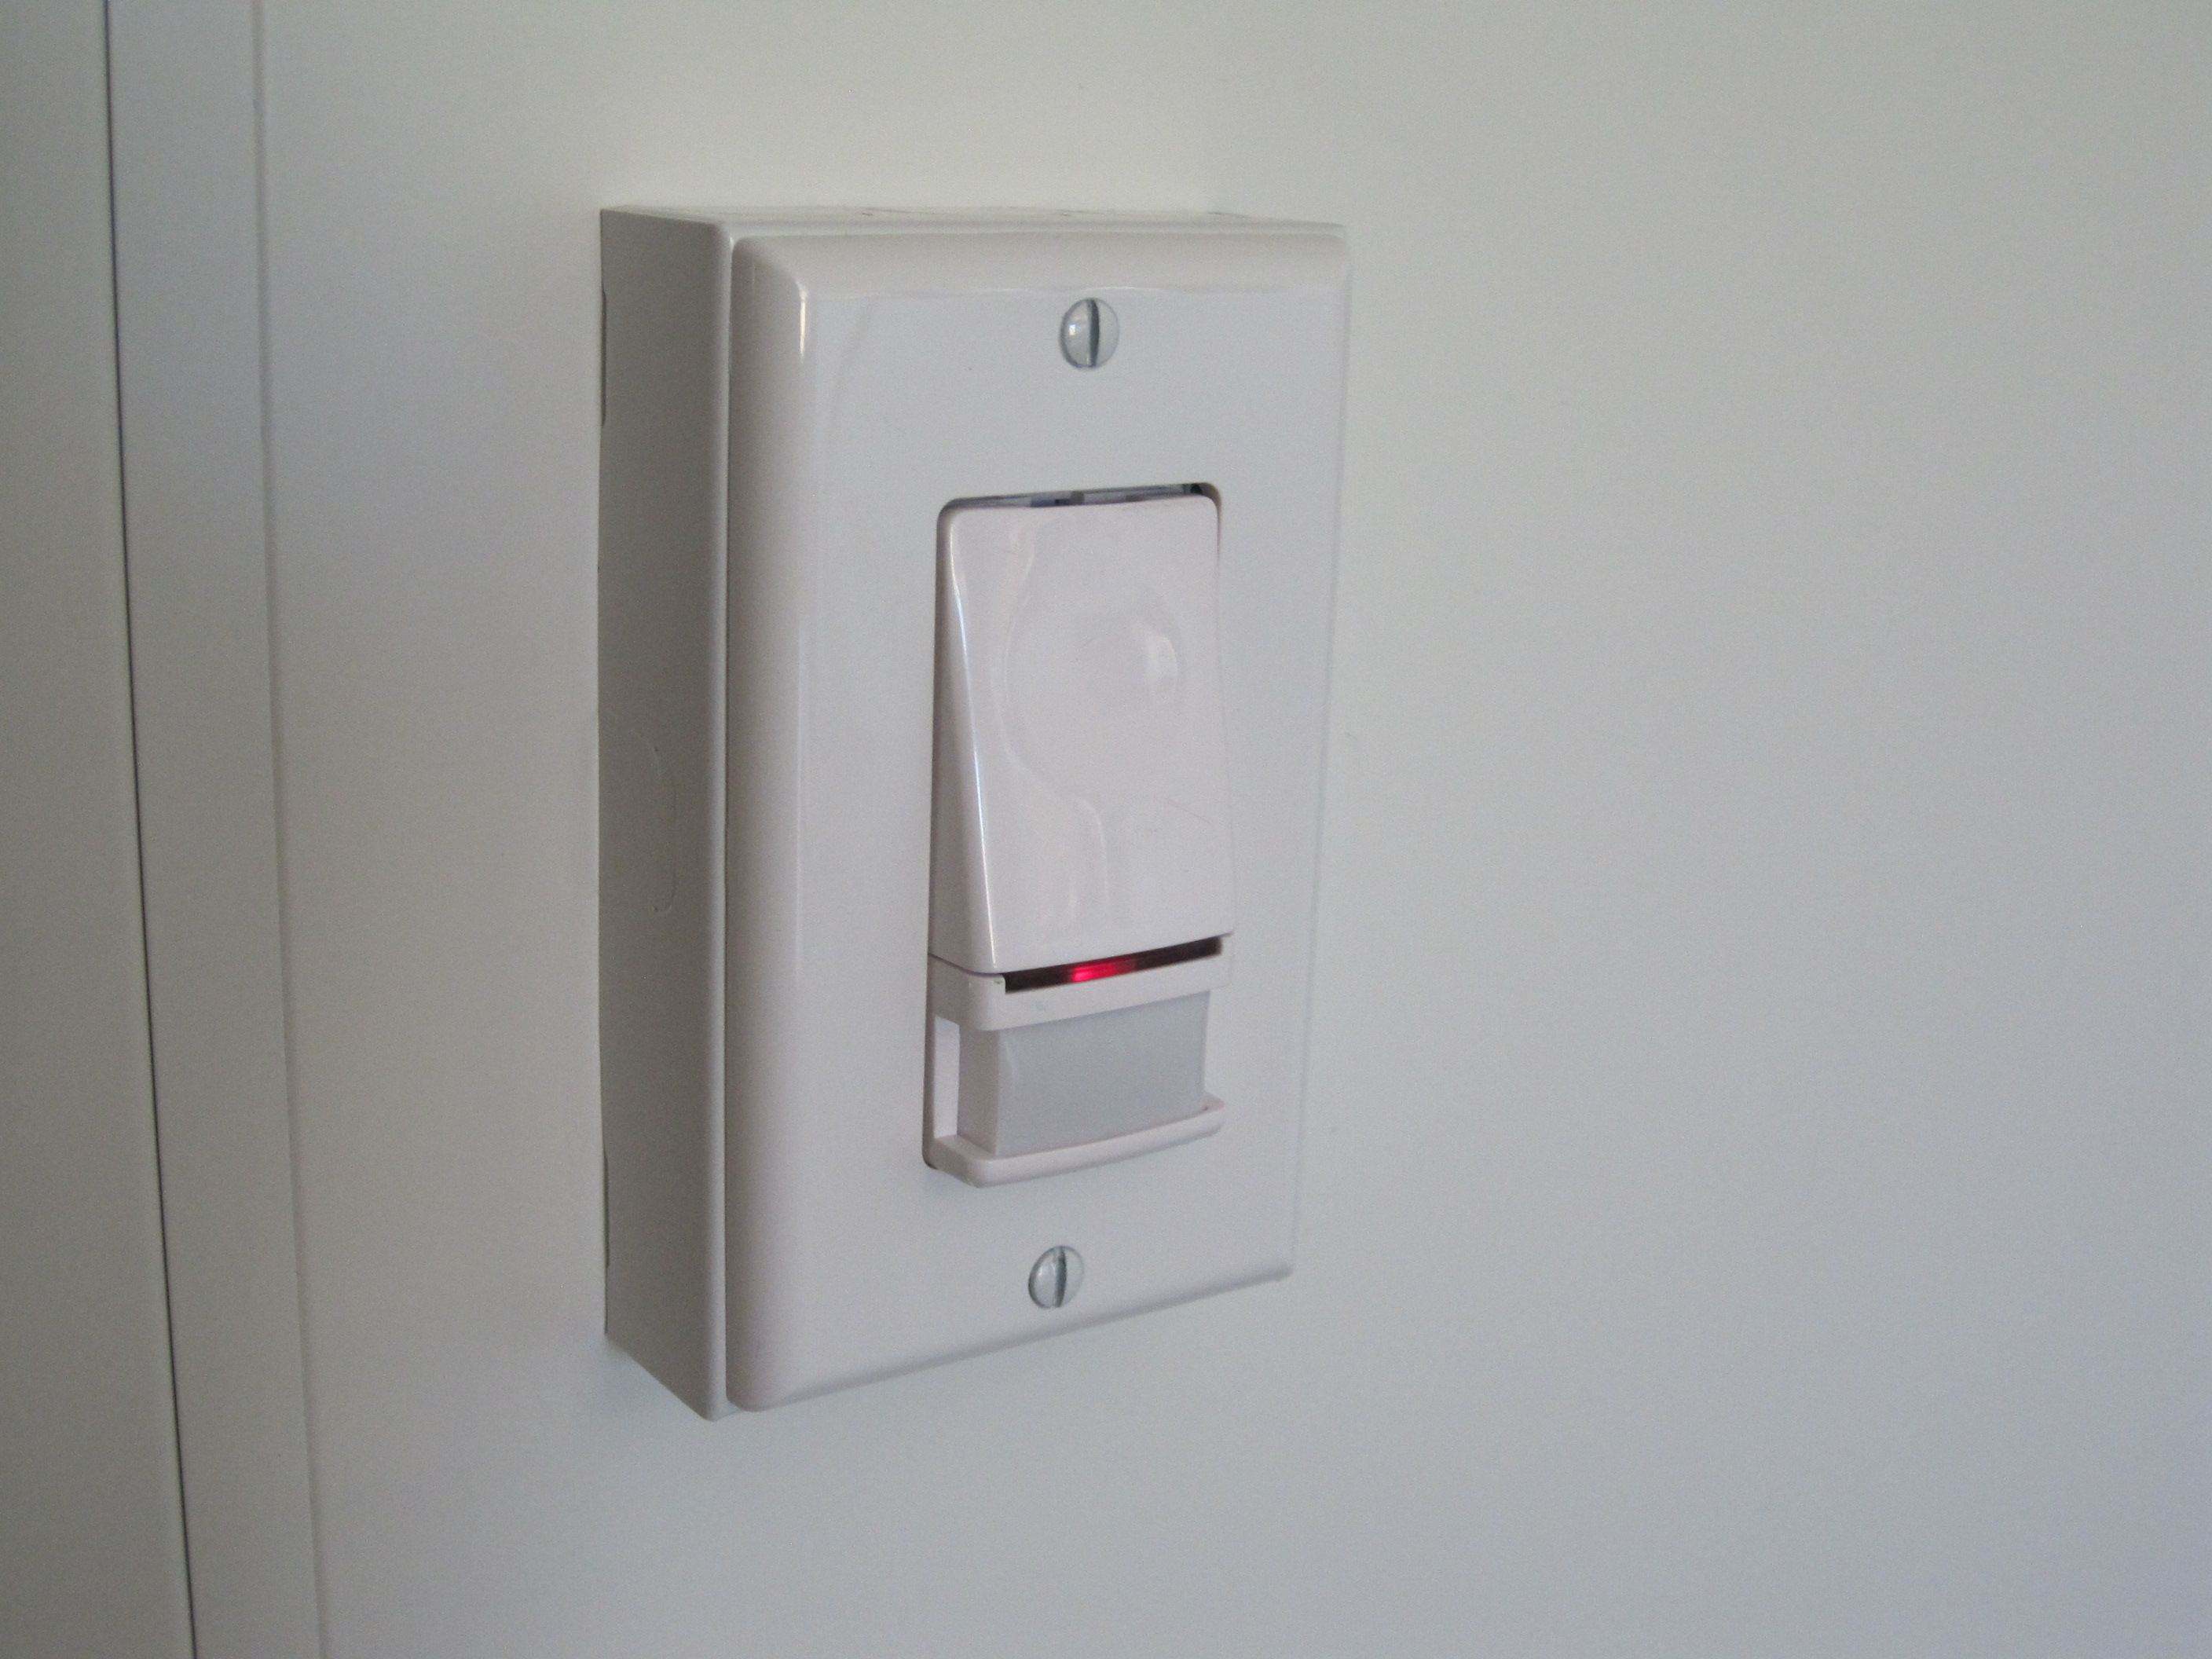 Photo of a vacancy sensor light switch on the wall.